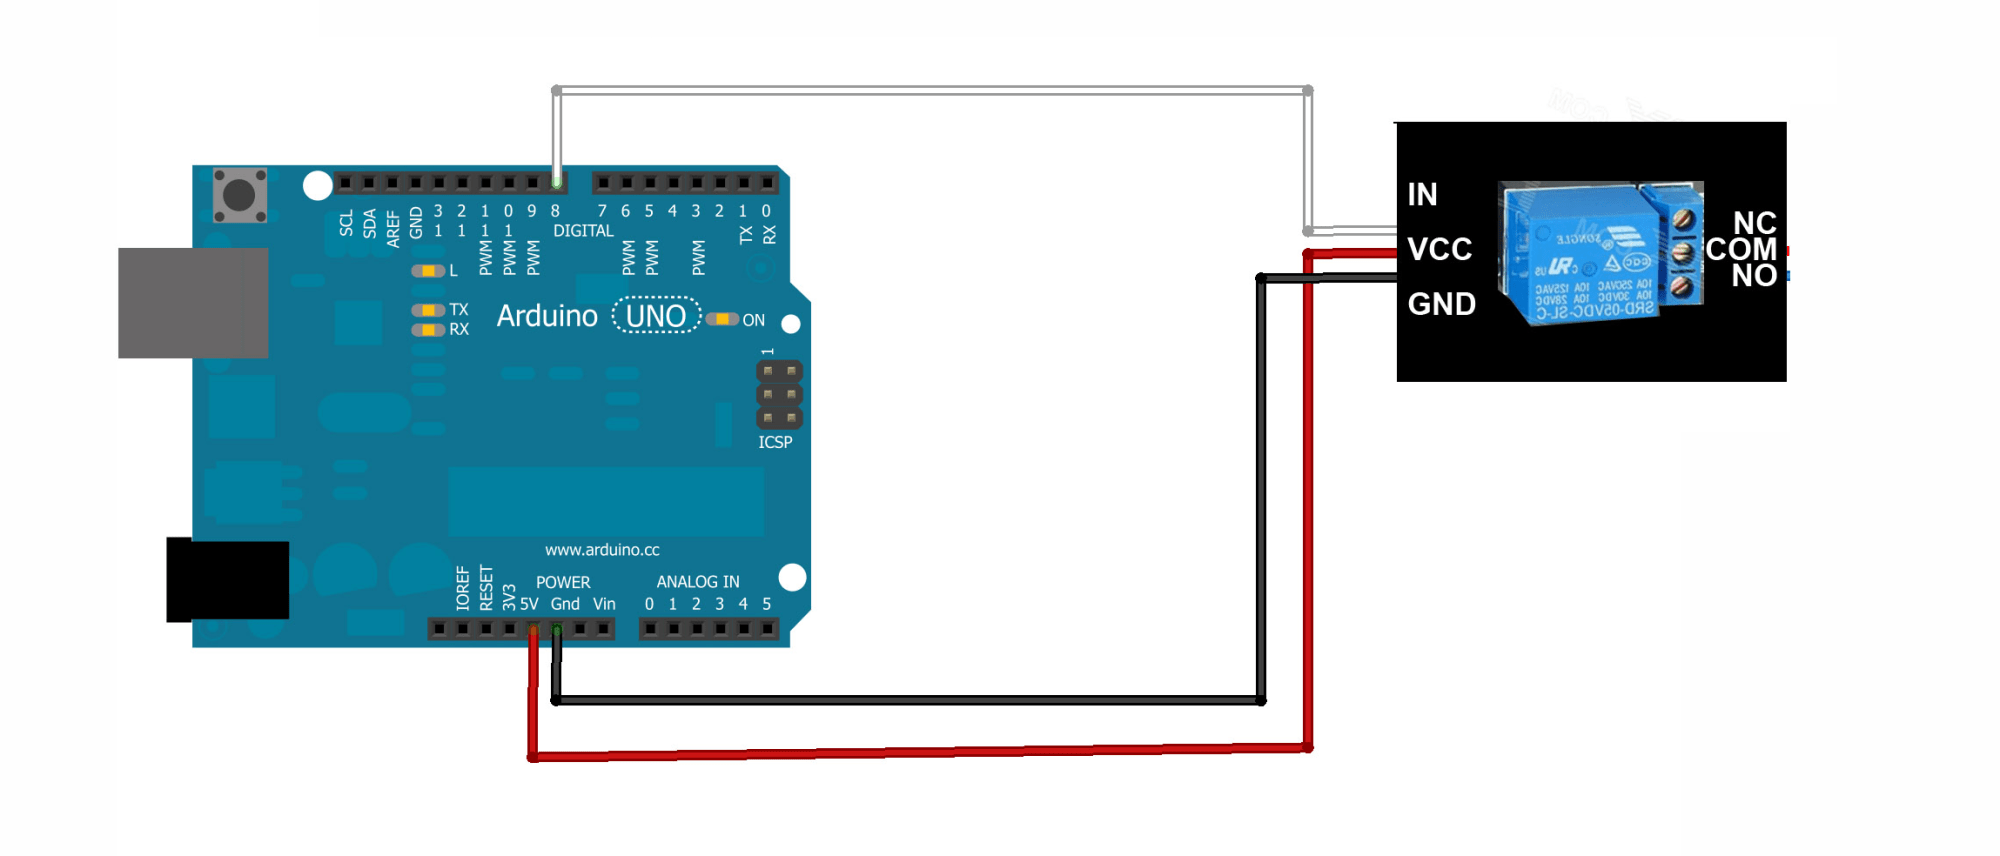 hight resolution of how to make an automatic ac switch using arduino uno which can turn on and off at a particular set time quora